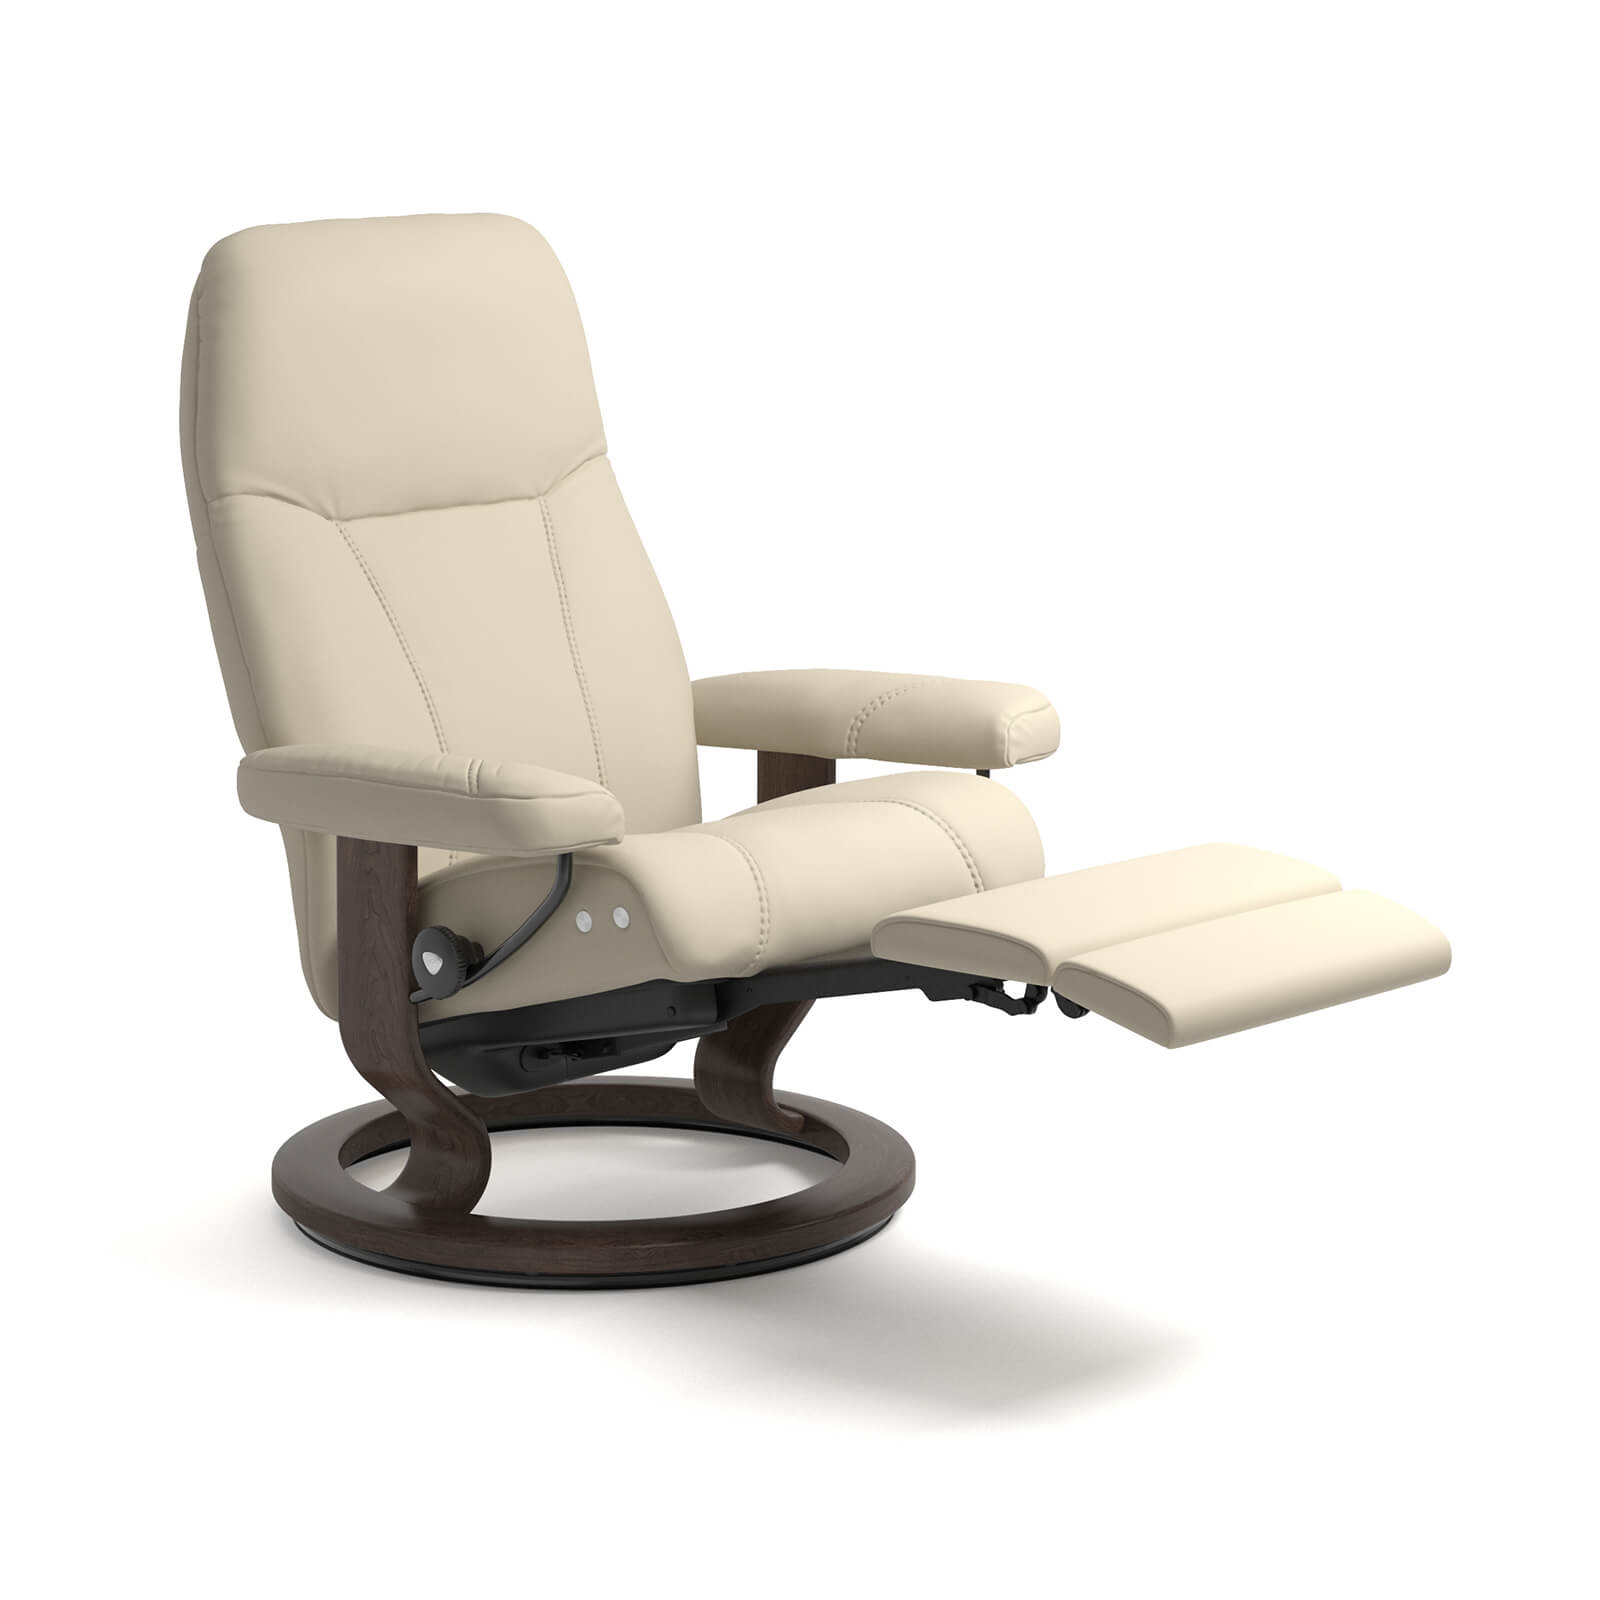 Stressless Sessel Paris Sessel Consul Legcomfort Batick Cream | Stressless